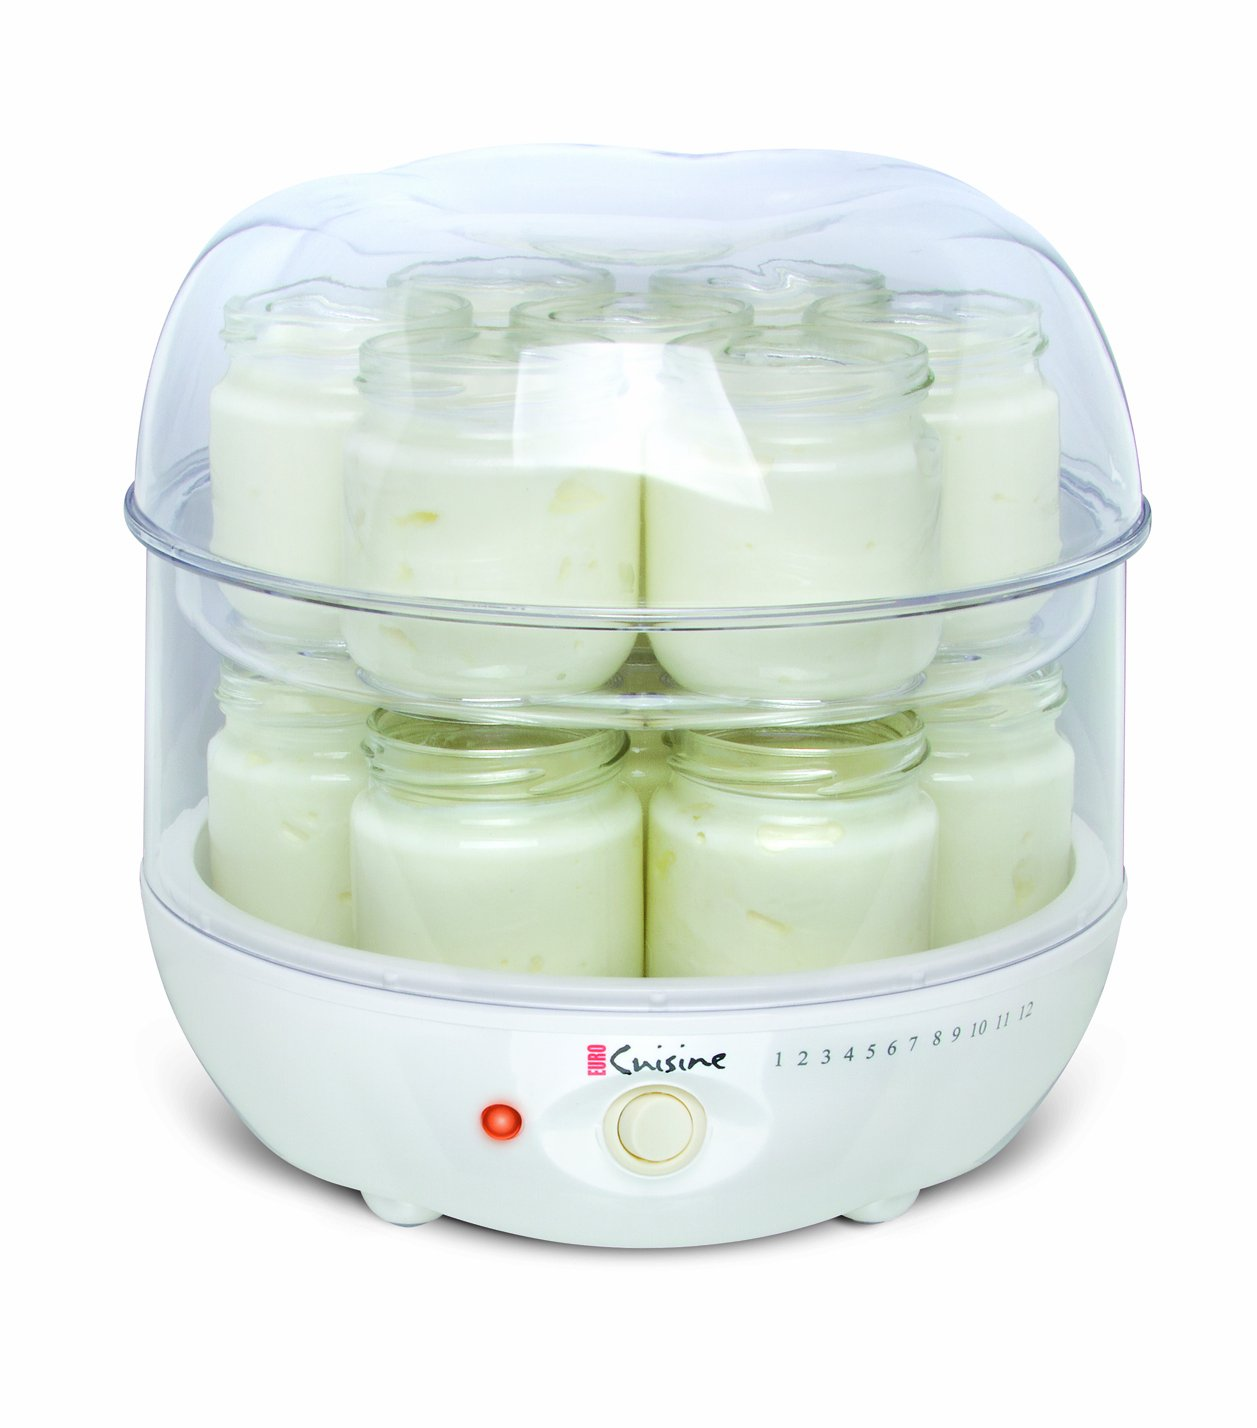 Euro Cuisine Euro Cuisine Gy4 Top Tier Of Yogurt Maker New Free